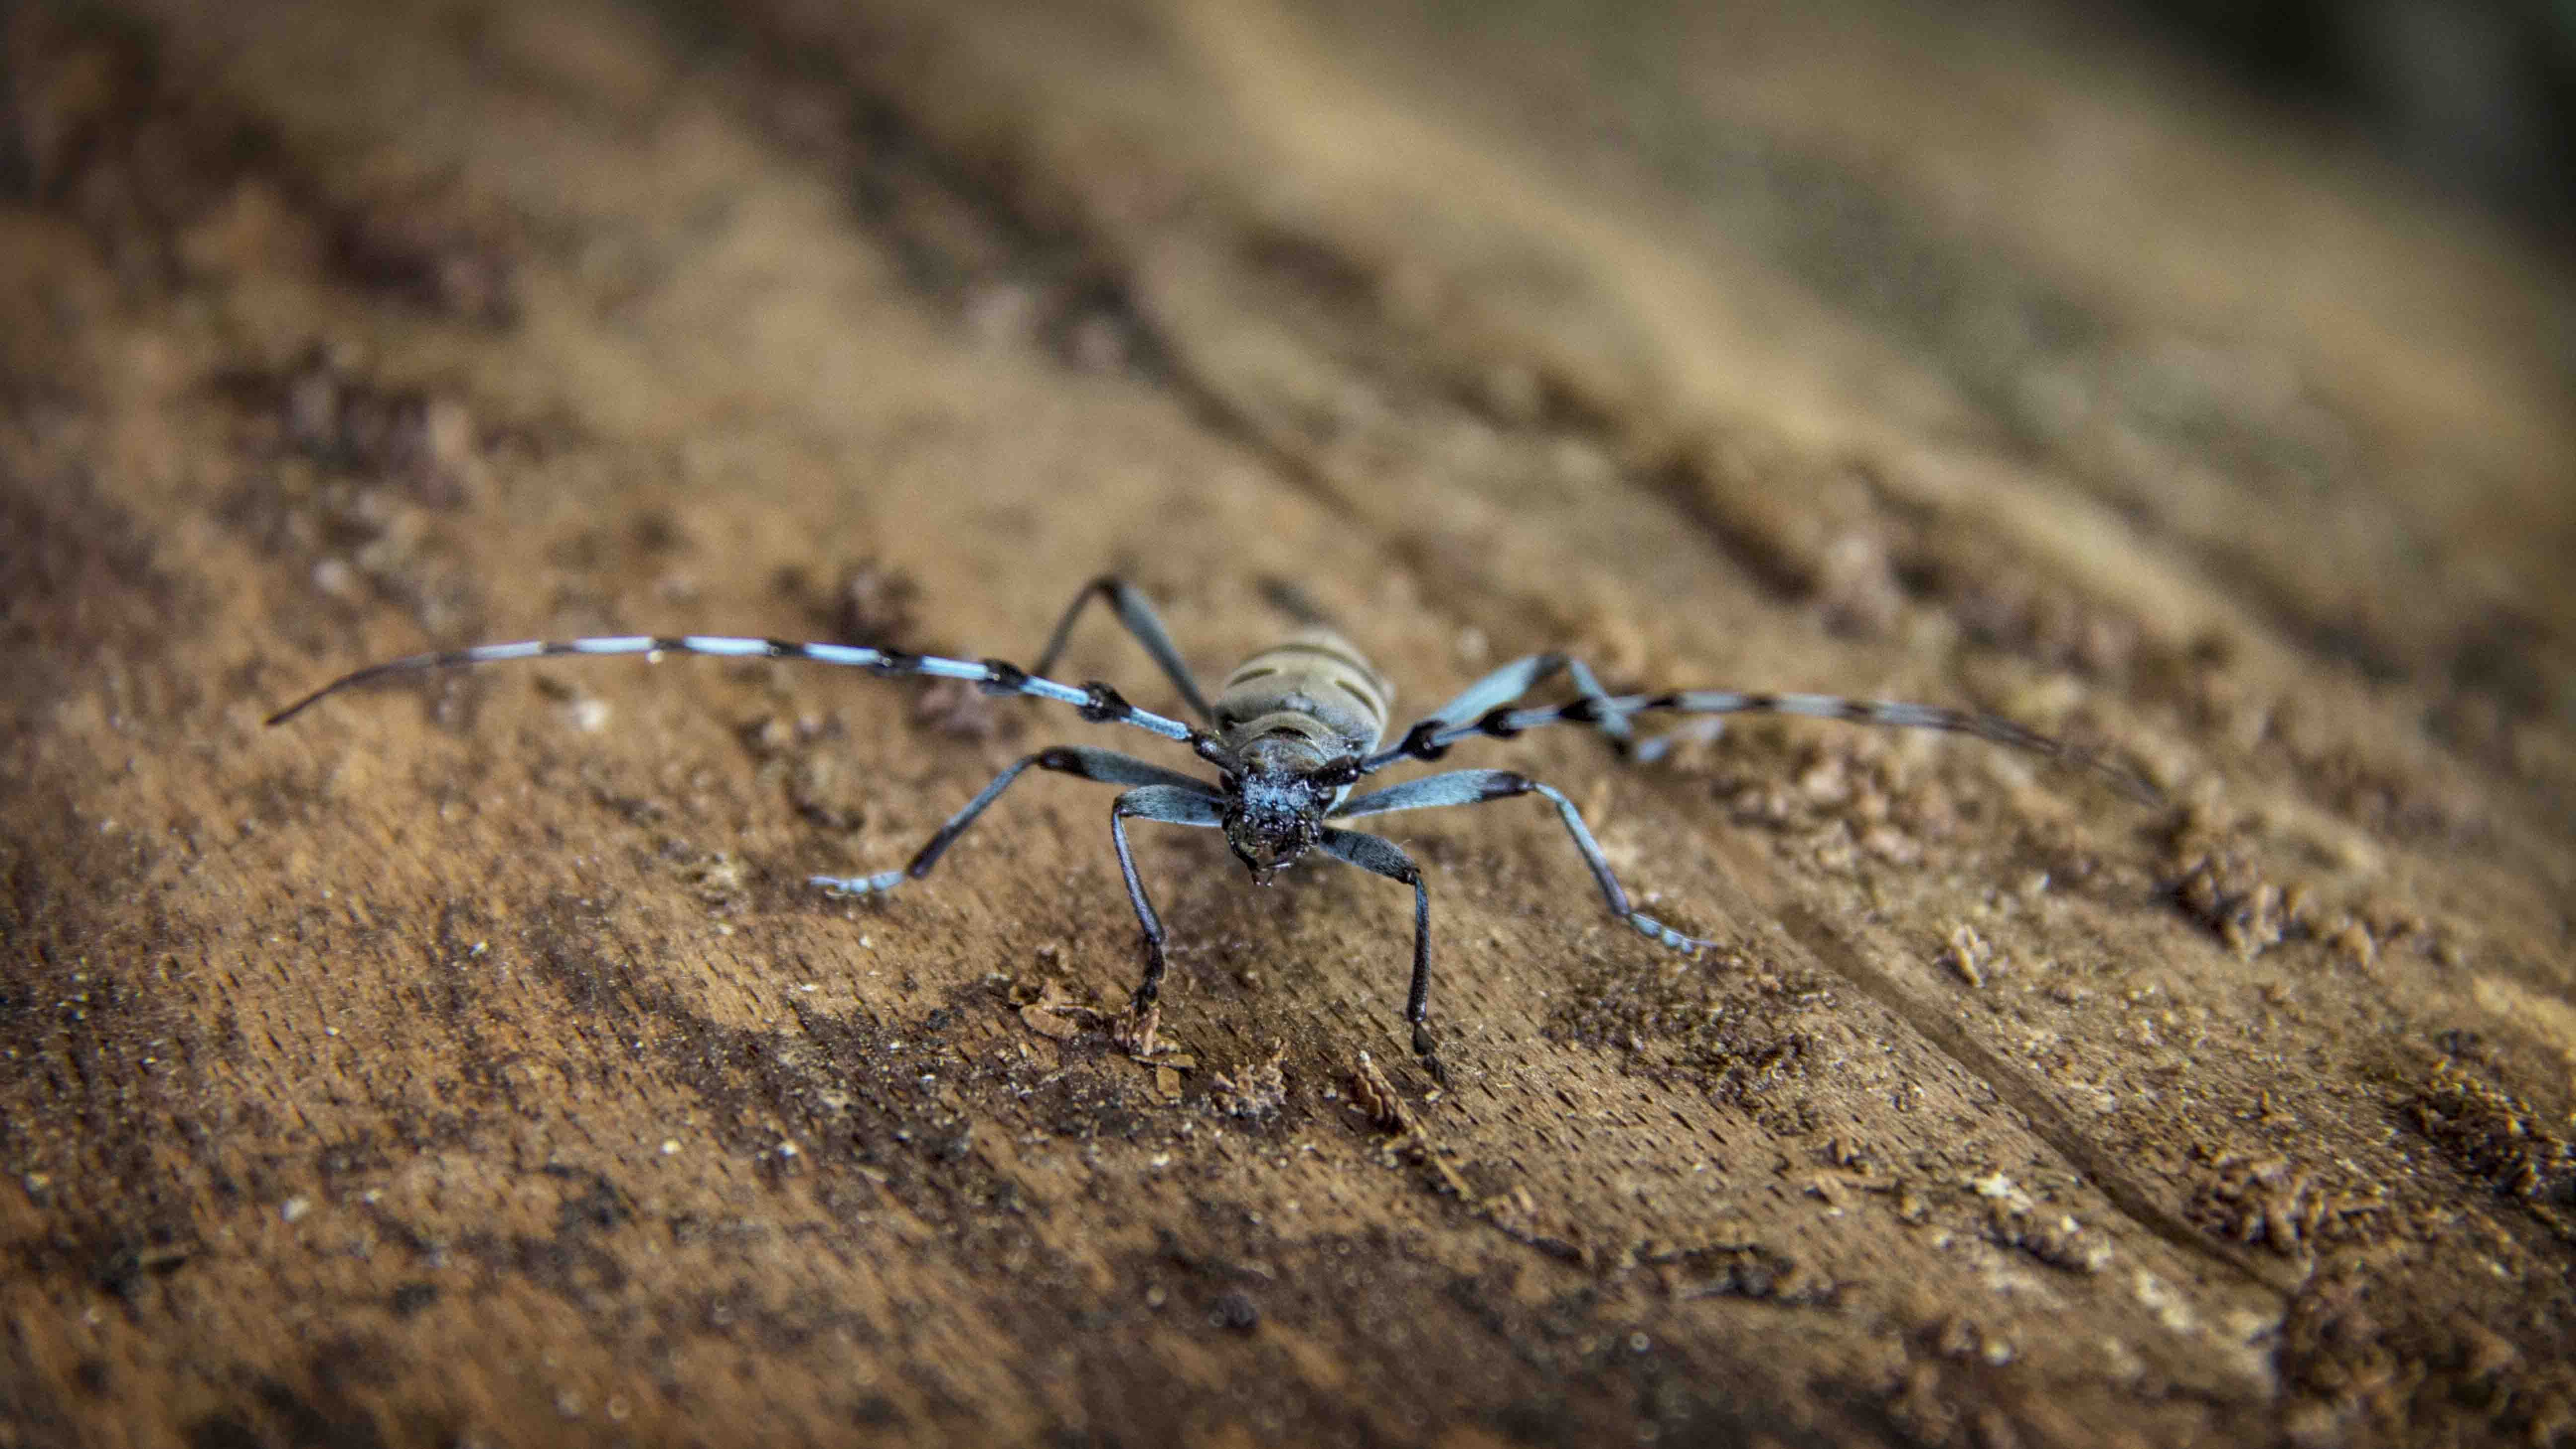 Black and Gray Spider on Brown Wood Log